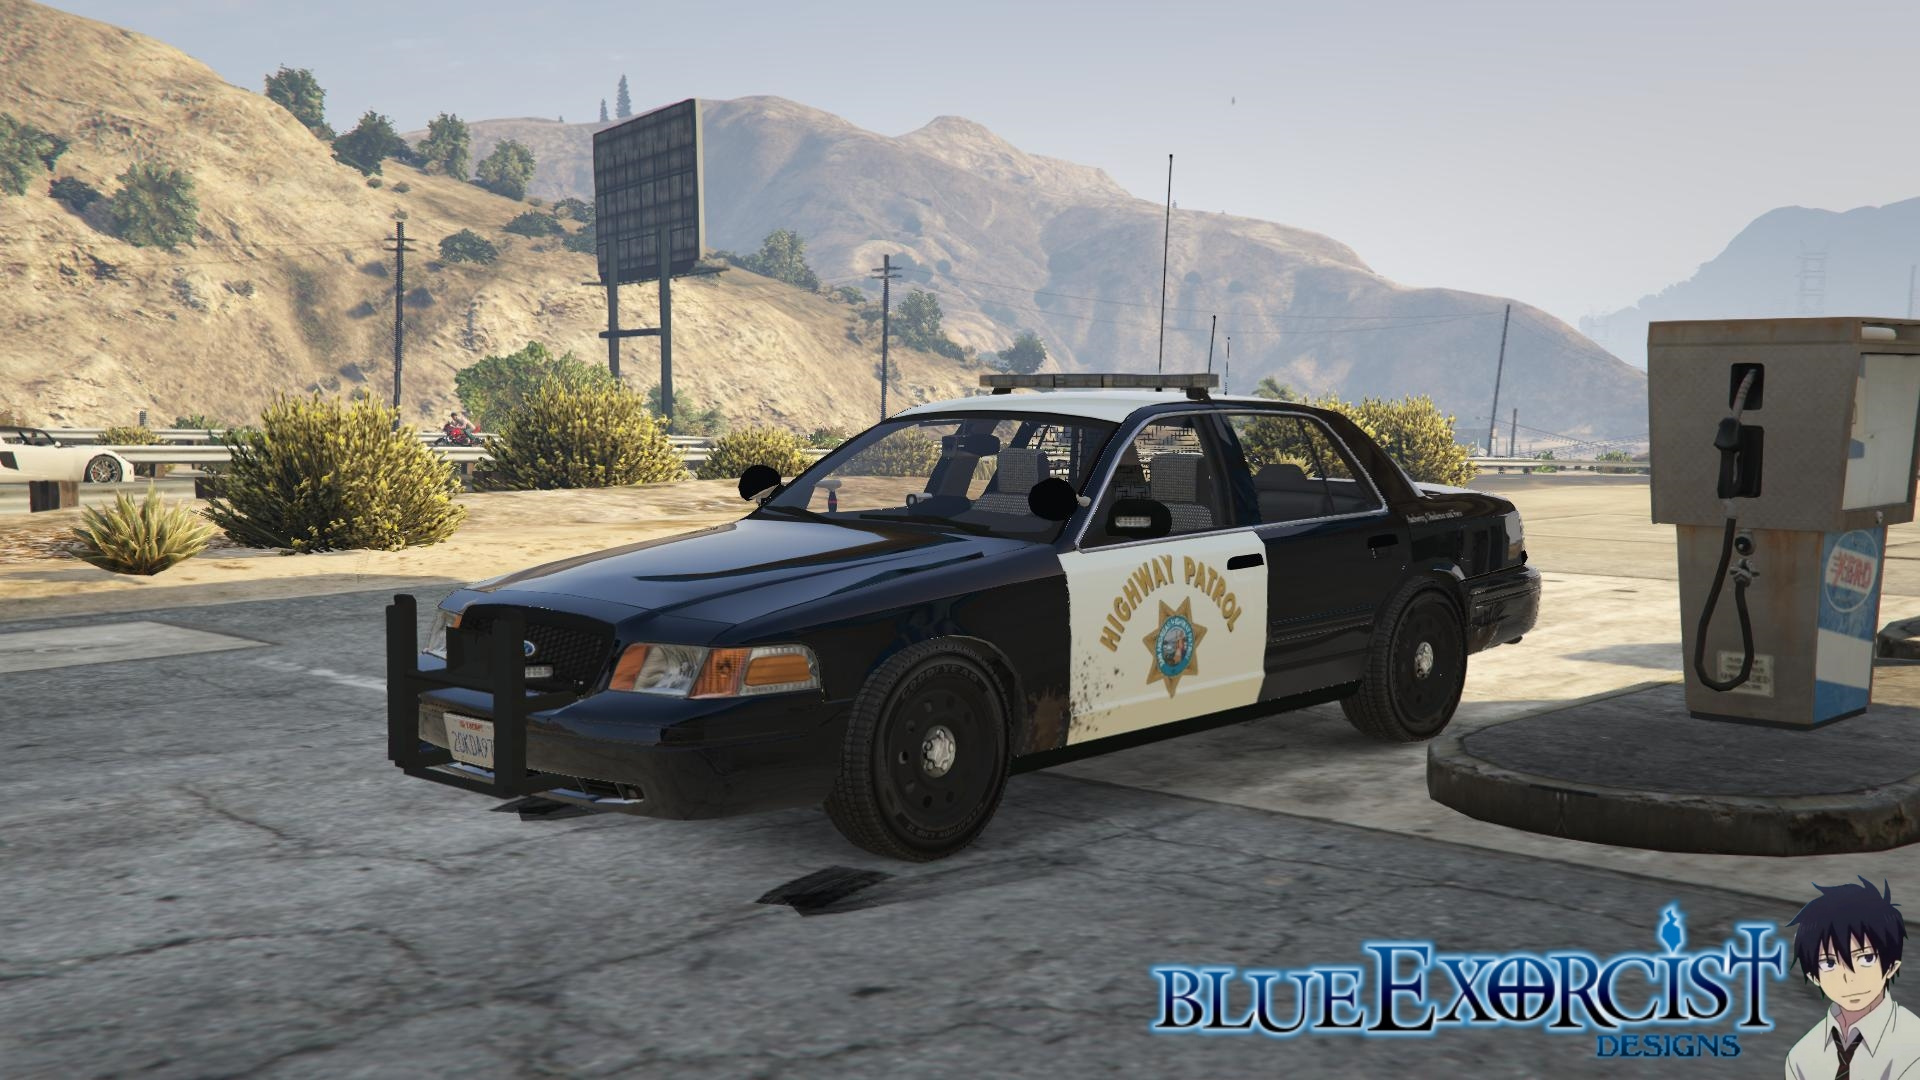 hight resolution of 93ebe9 gta5 2015 09 14 18 45 27 97 2011 ford crown victoria